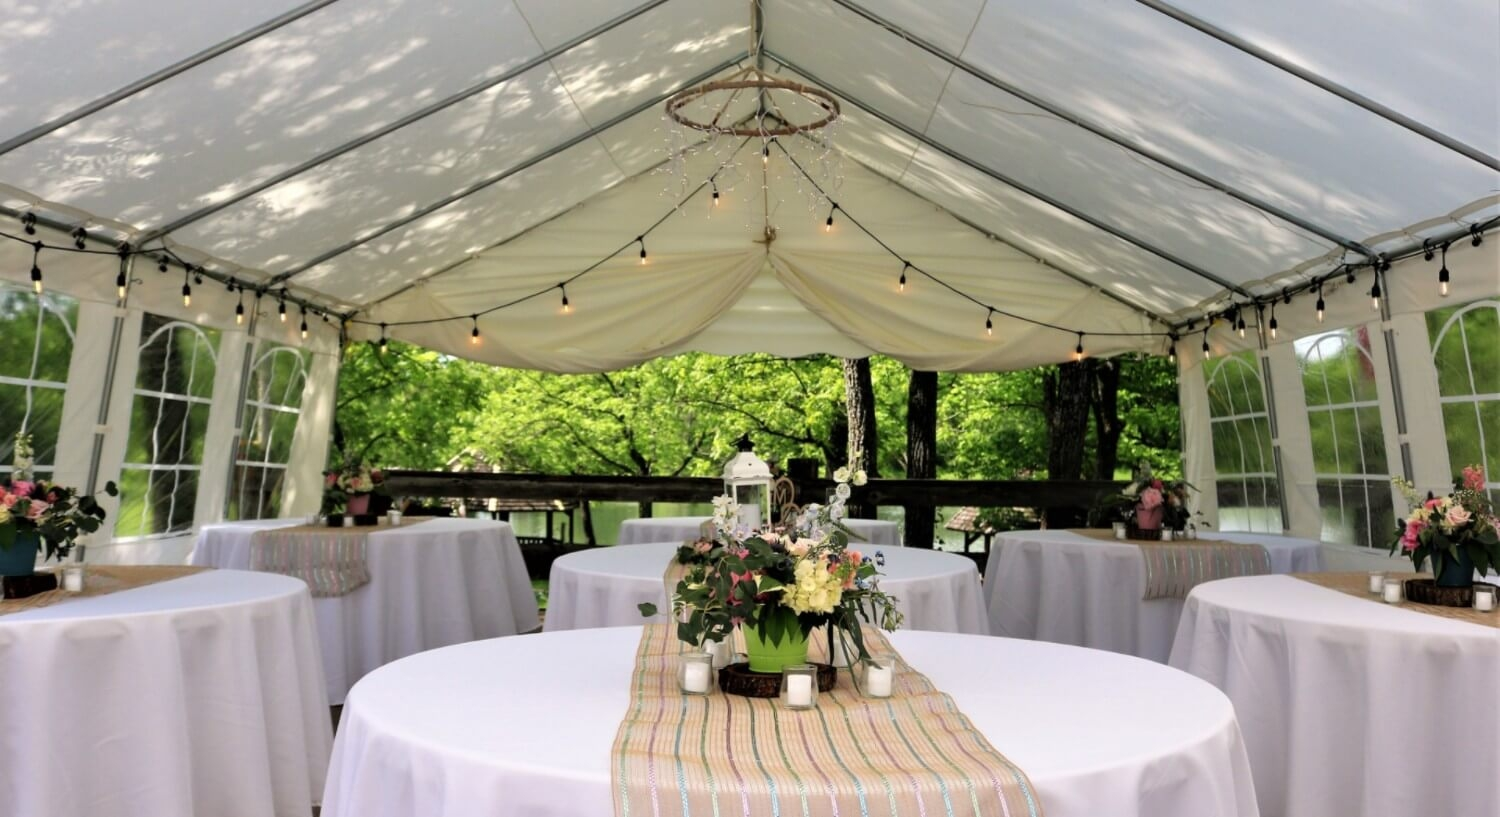 Inside of white wedding tent, tables with white linens, tan table runner and fresh flowers